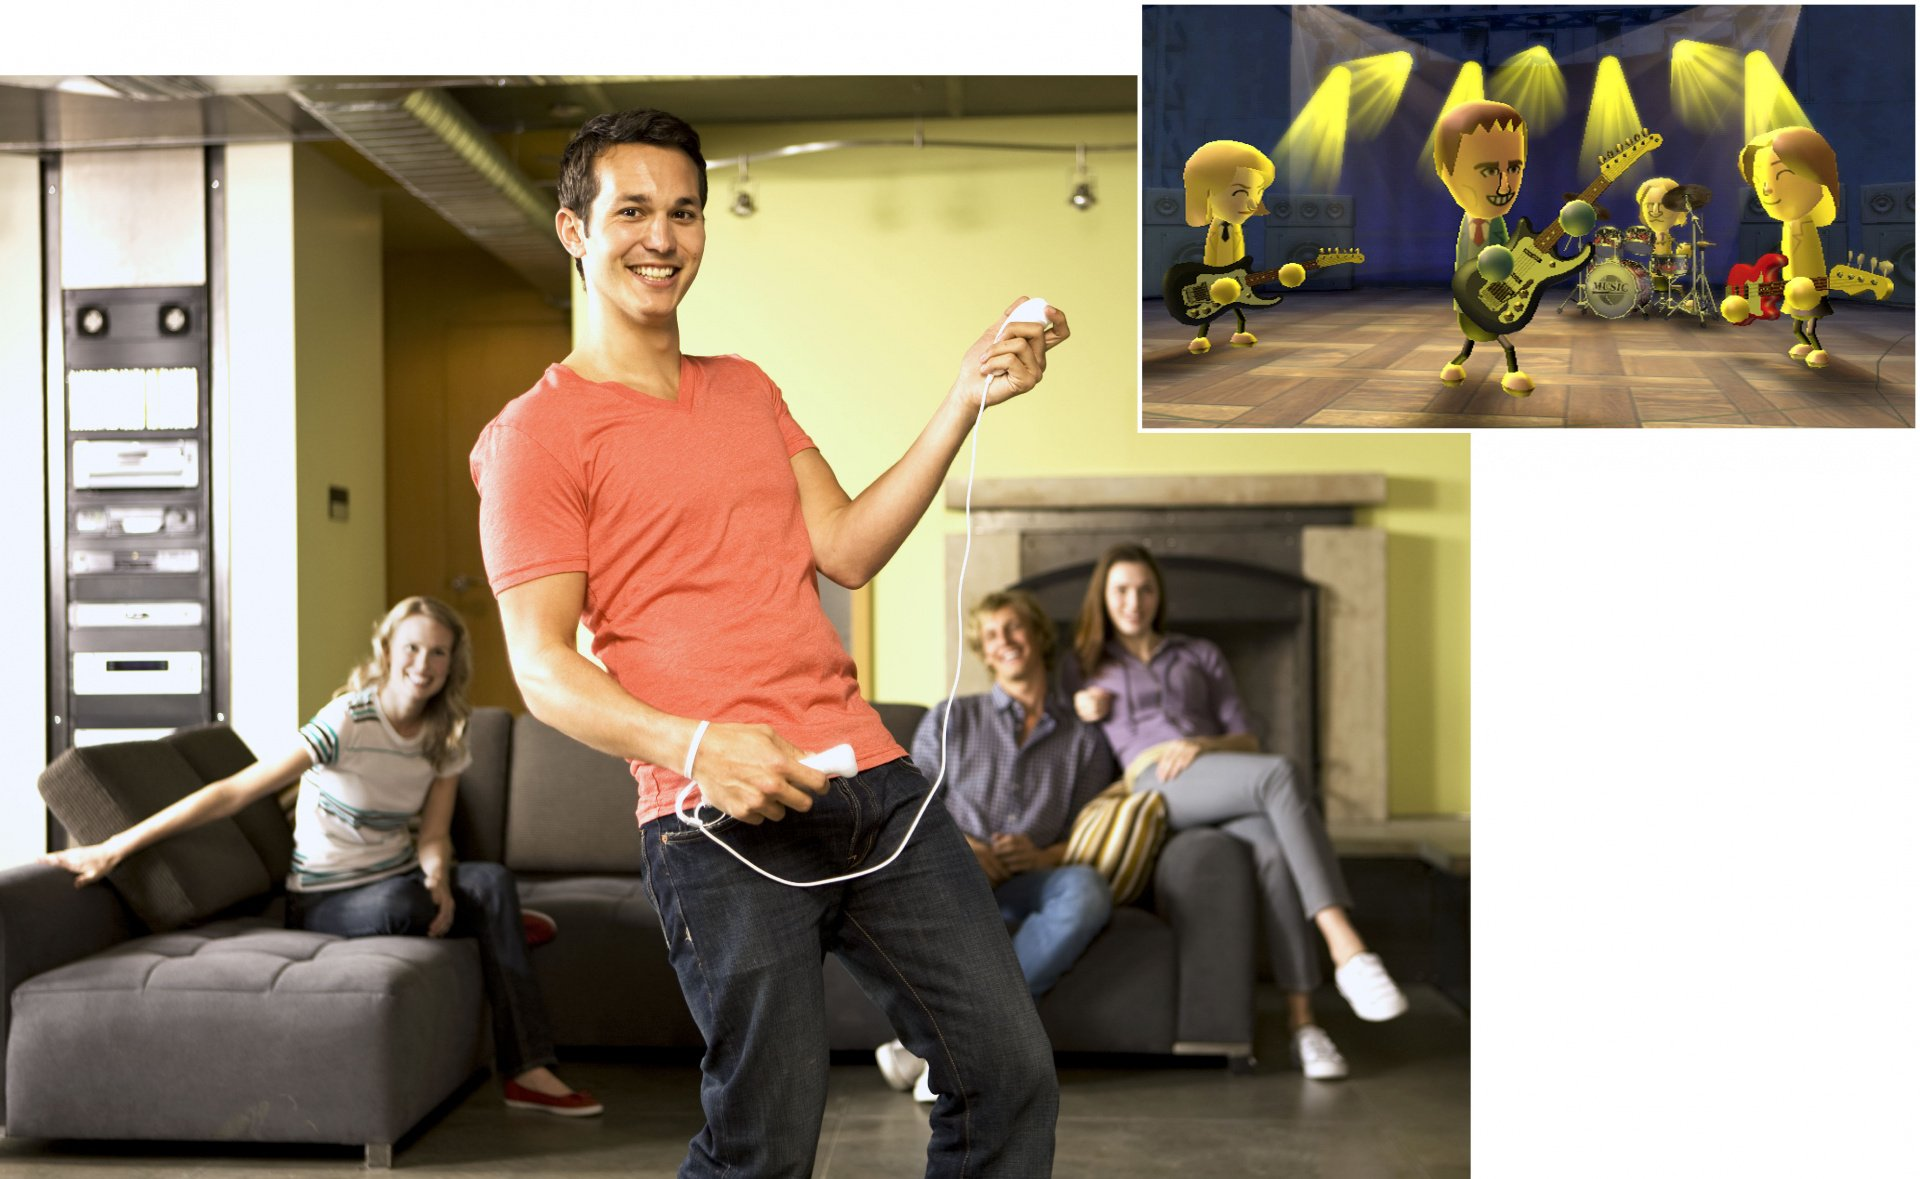 Wii Music Wii Game Profile News Reviews Videos